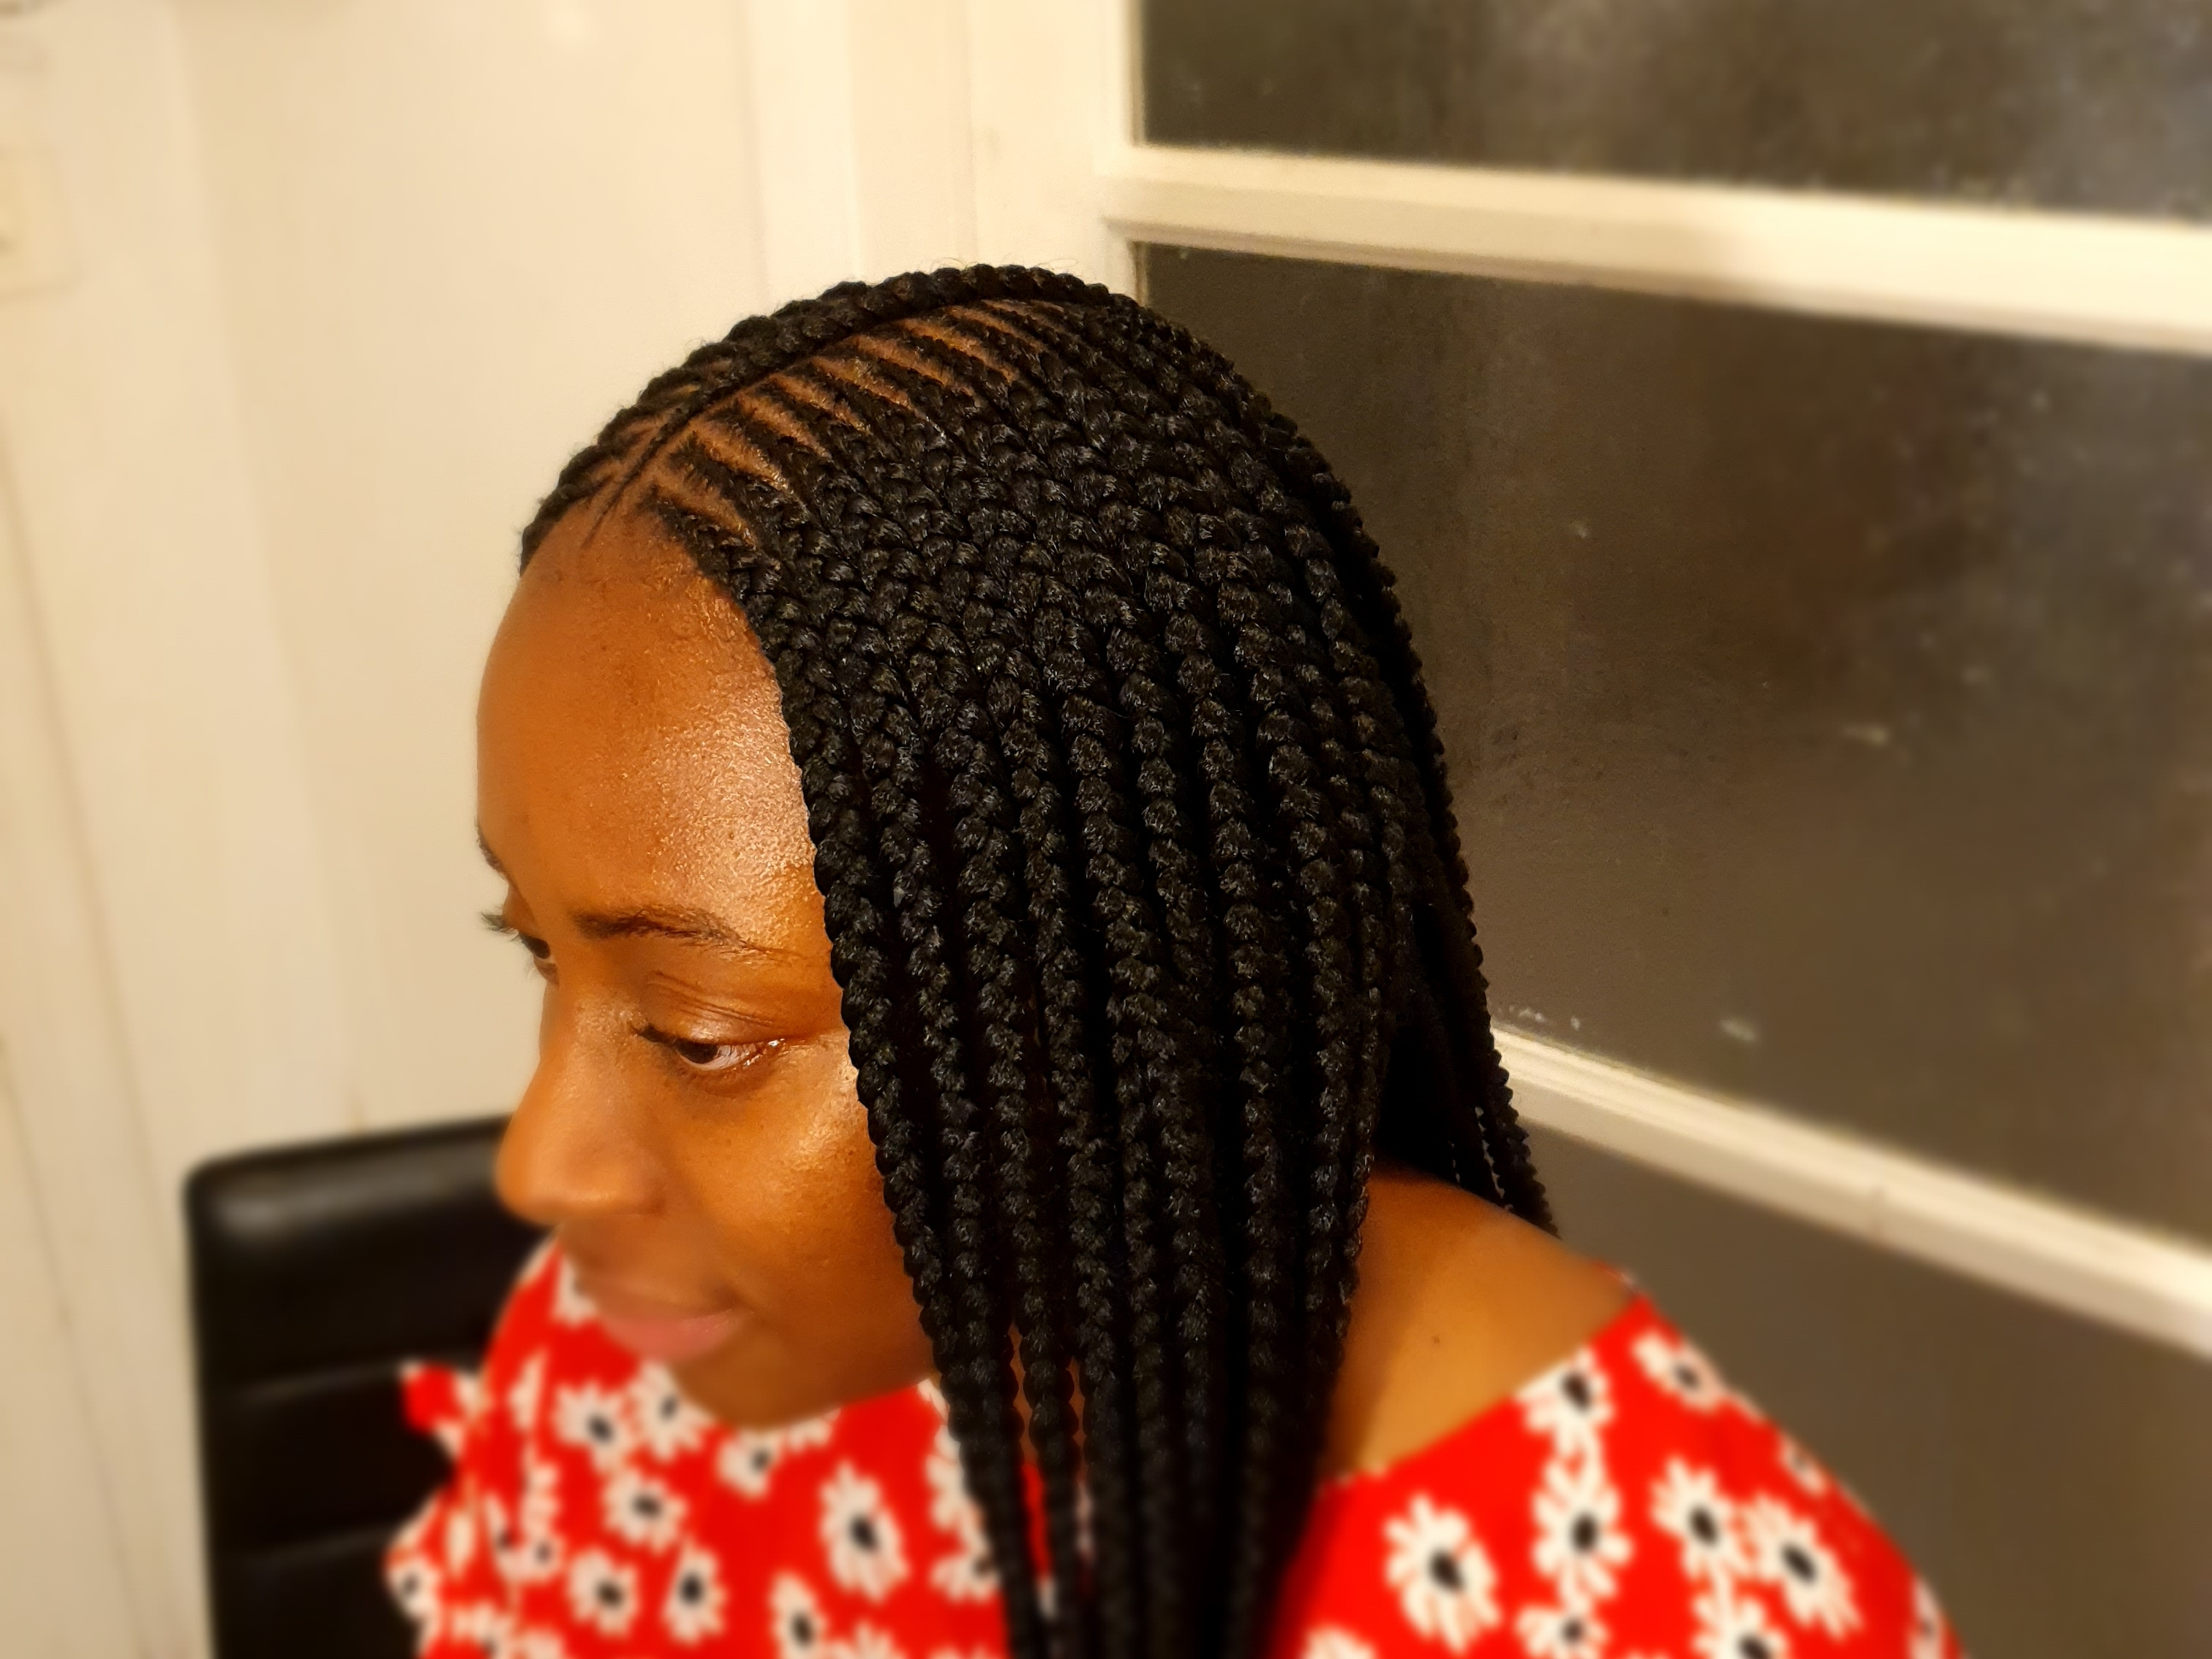 salon de coiffure afro tresse tresses box braids crochet braids vanilles tissages paris 75 77 78 91 92 93 94 95 VZQONXWZ